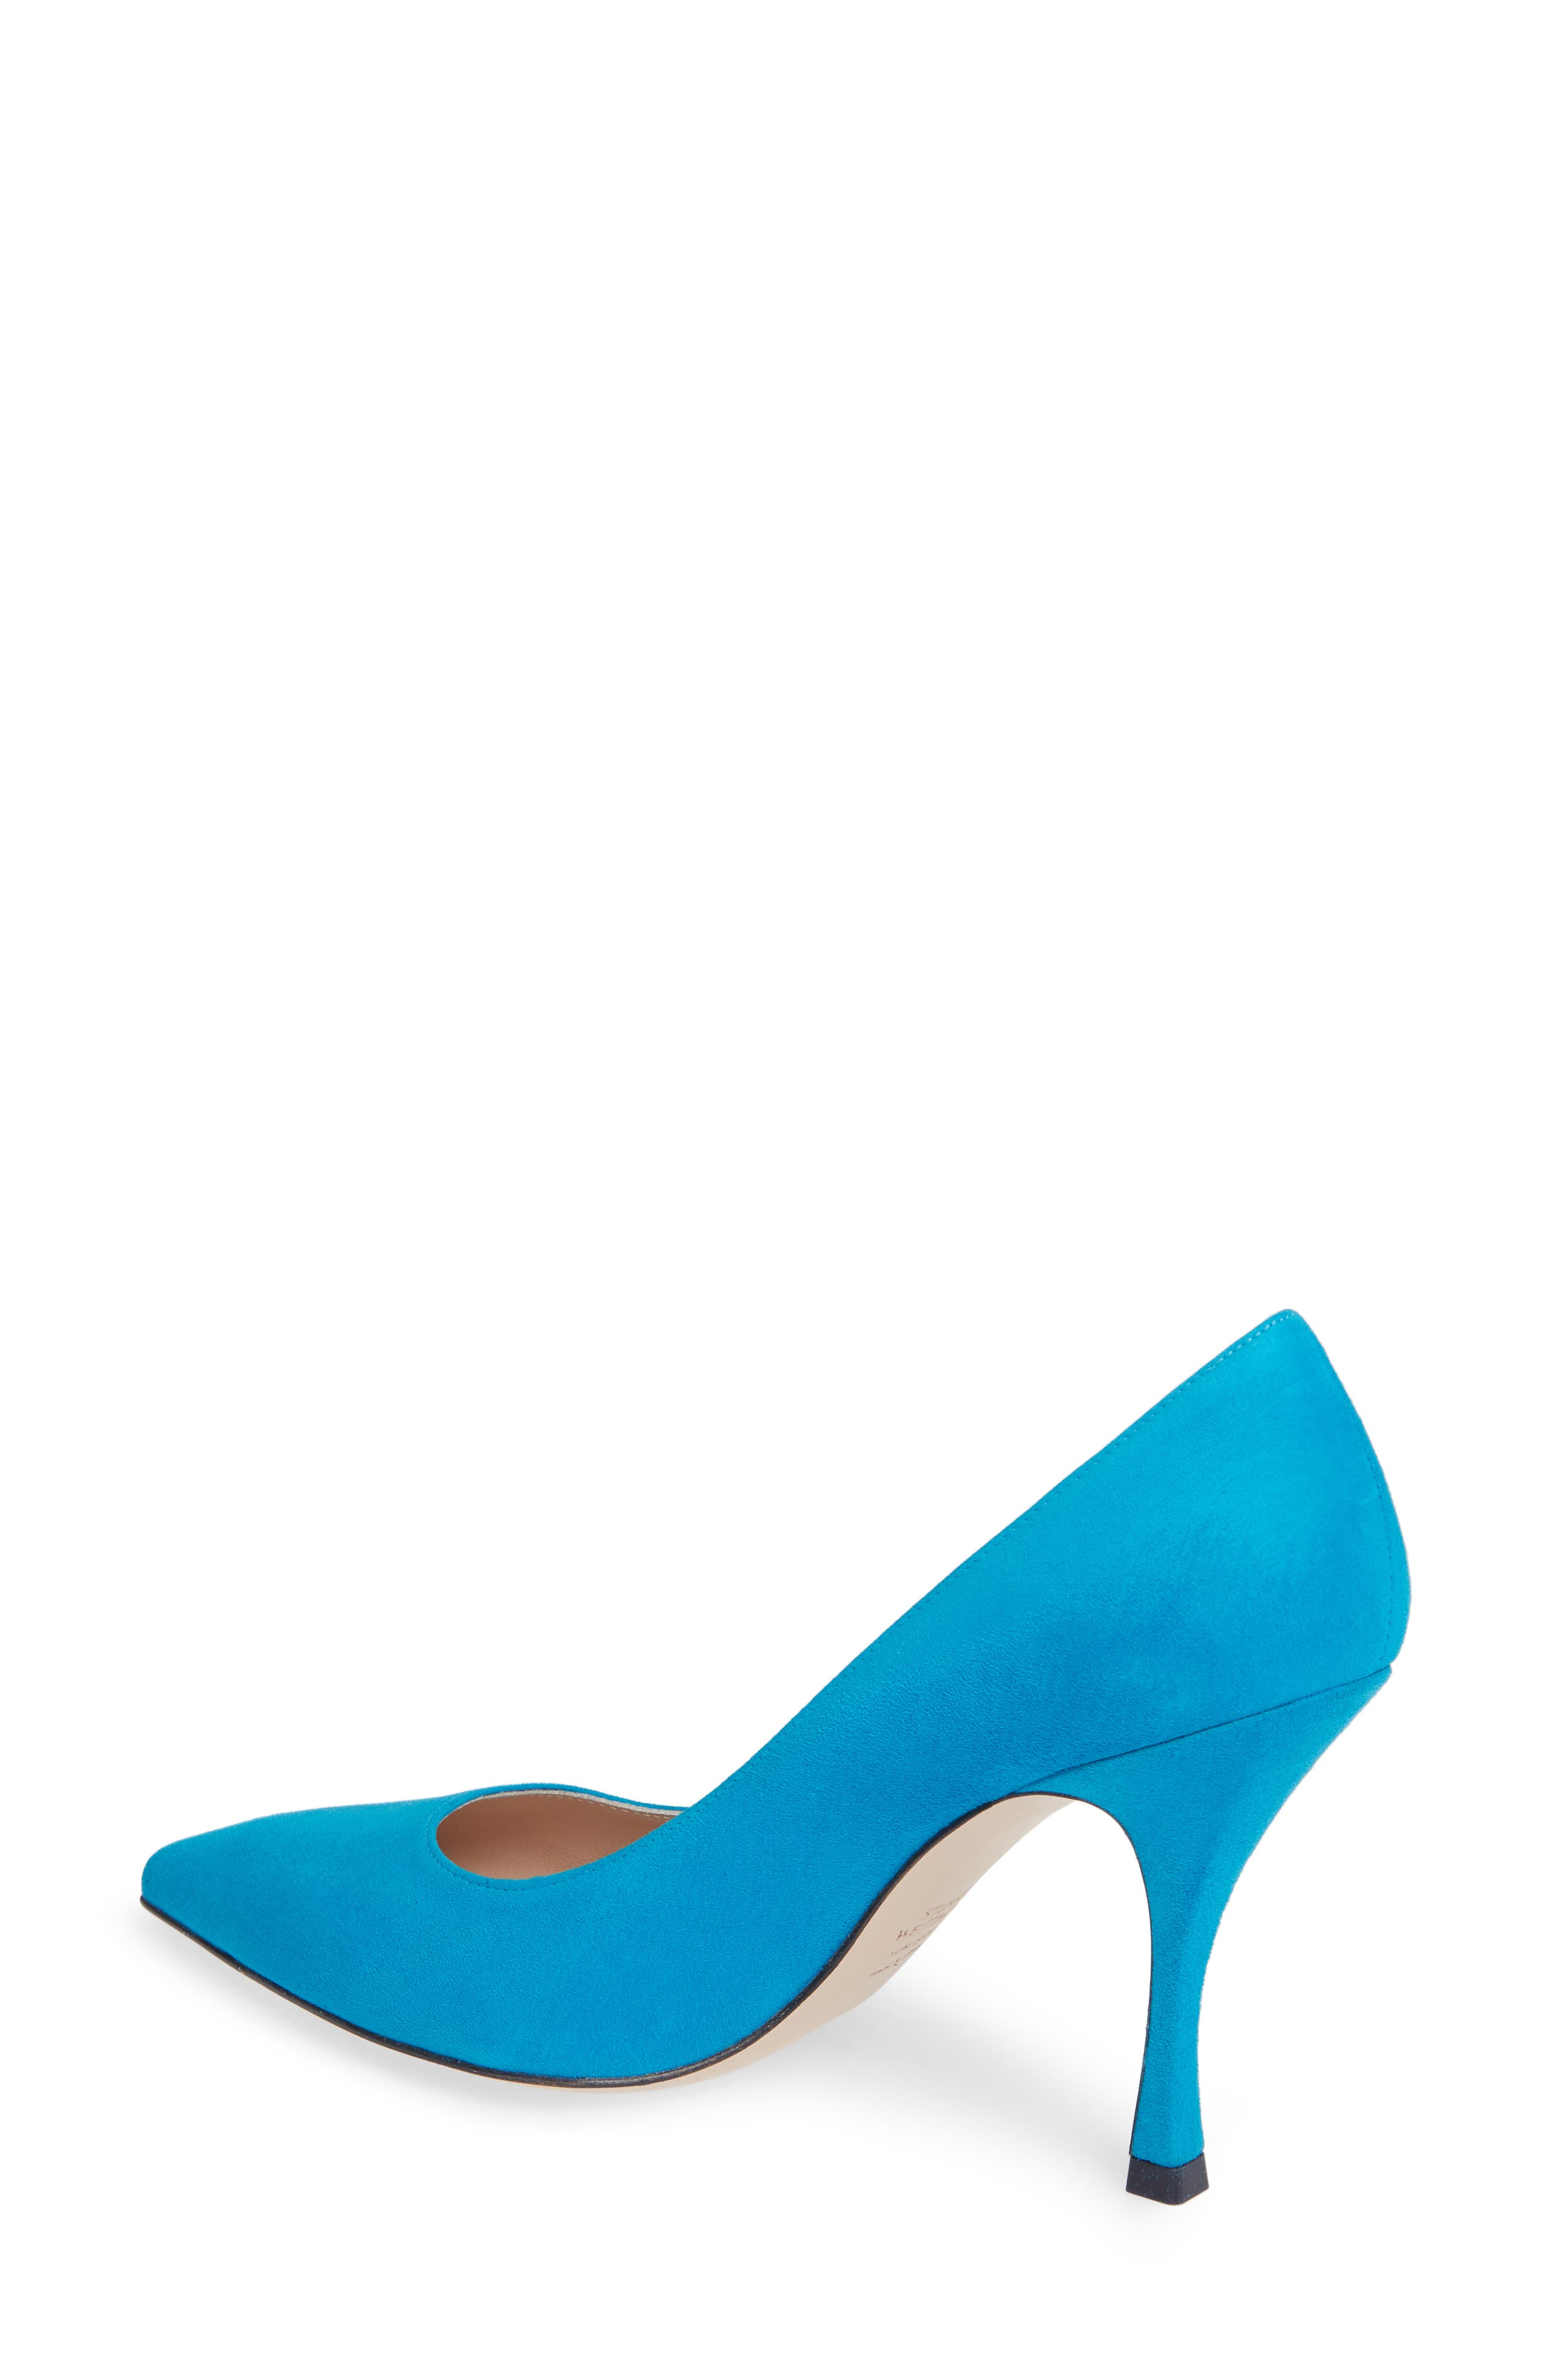 Tippi Pump,                             Alternate thumbnail 2, color,                             OCEANIC SUEDE